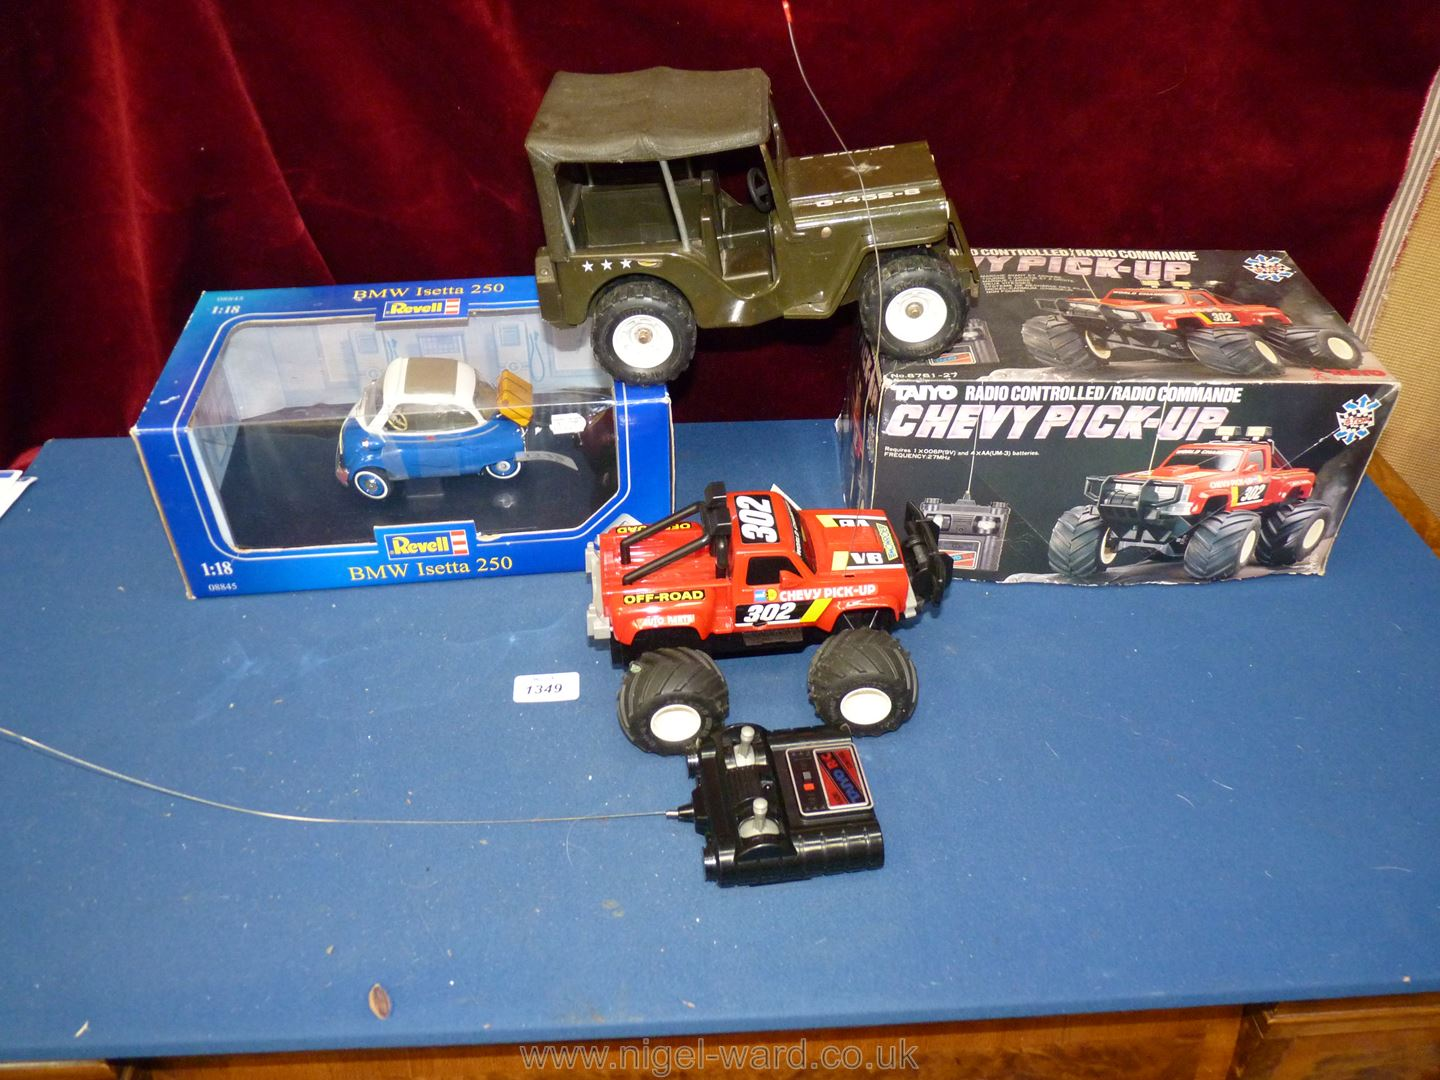 Three large toy vehicles (two boxed) comprising BMW Isetta, Chevy pick-up and military jeep.